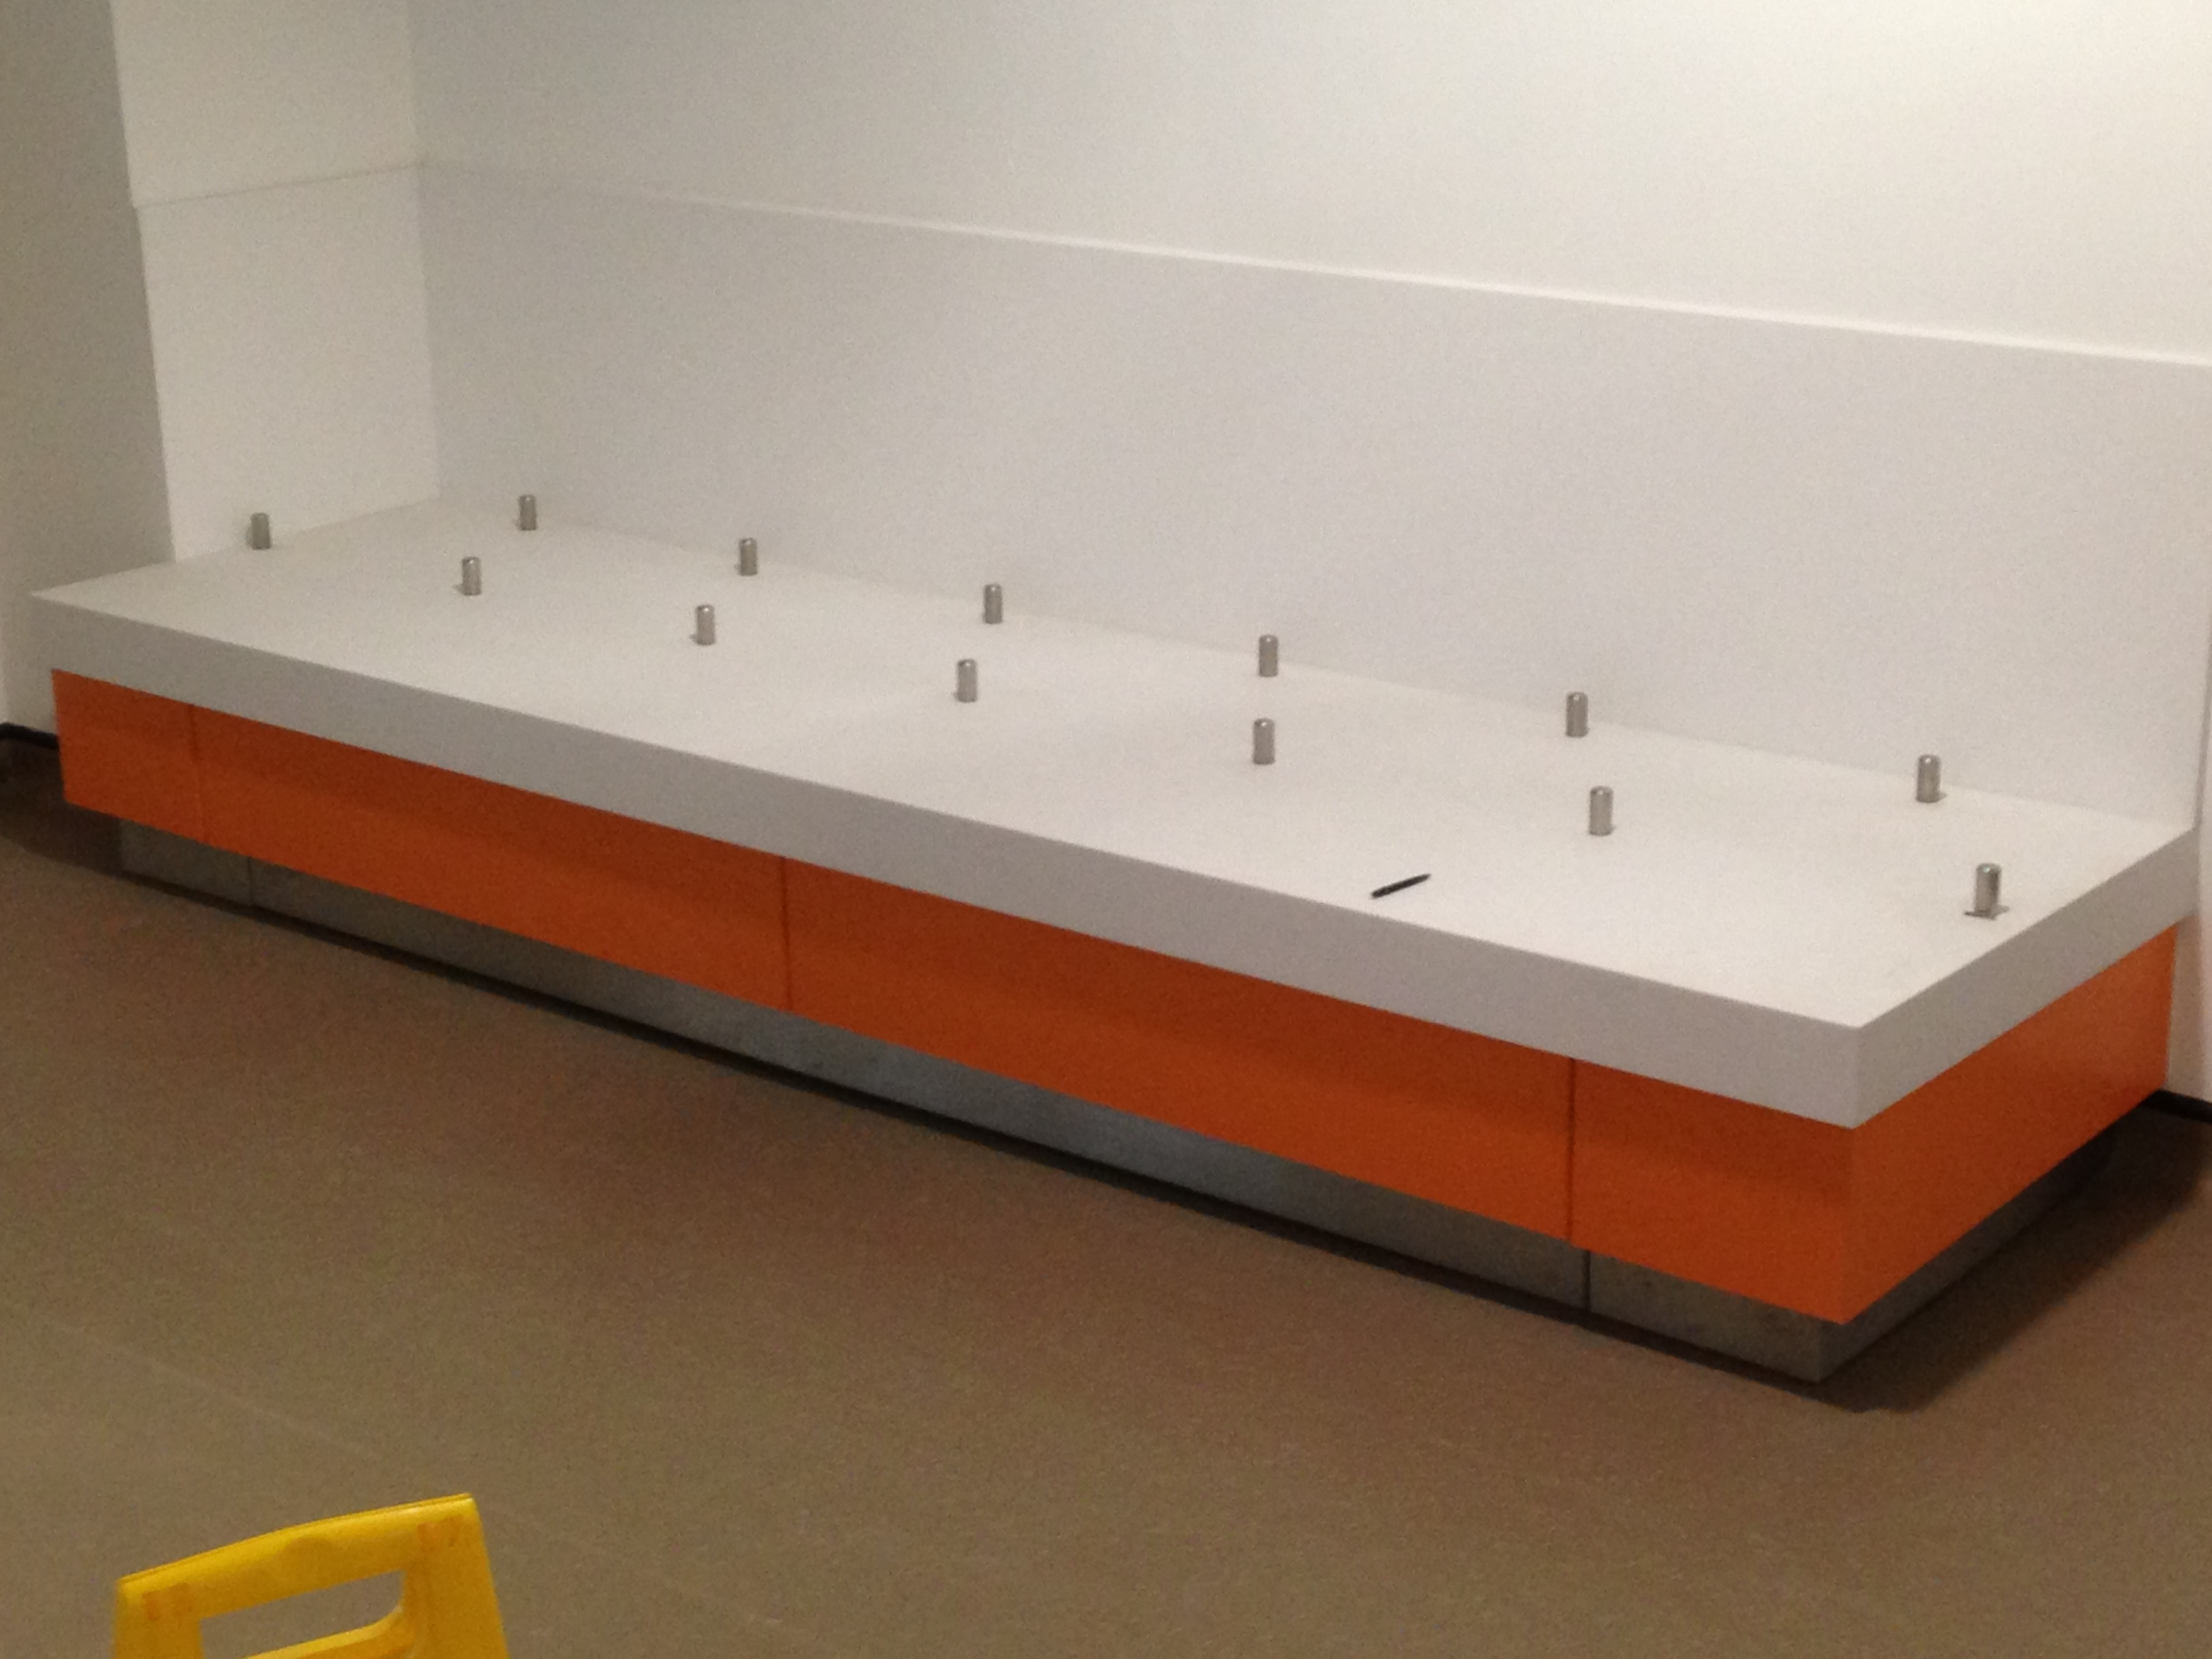 University -  Birmingham White solid surface worktops with stainless steel tray runners and two tone laminated fascia